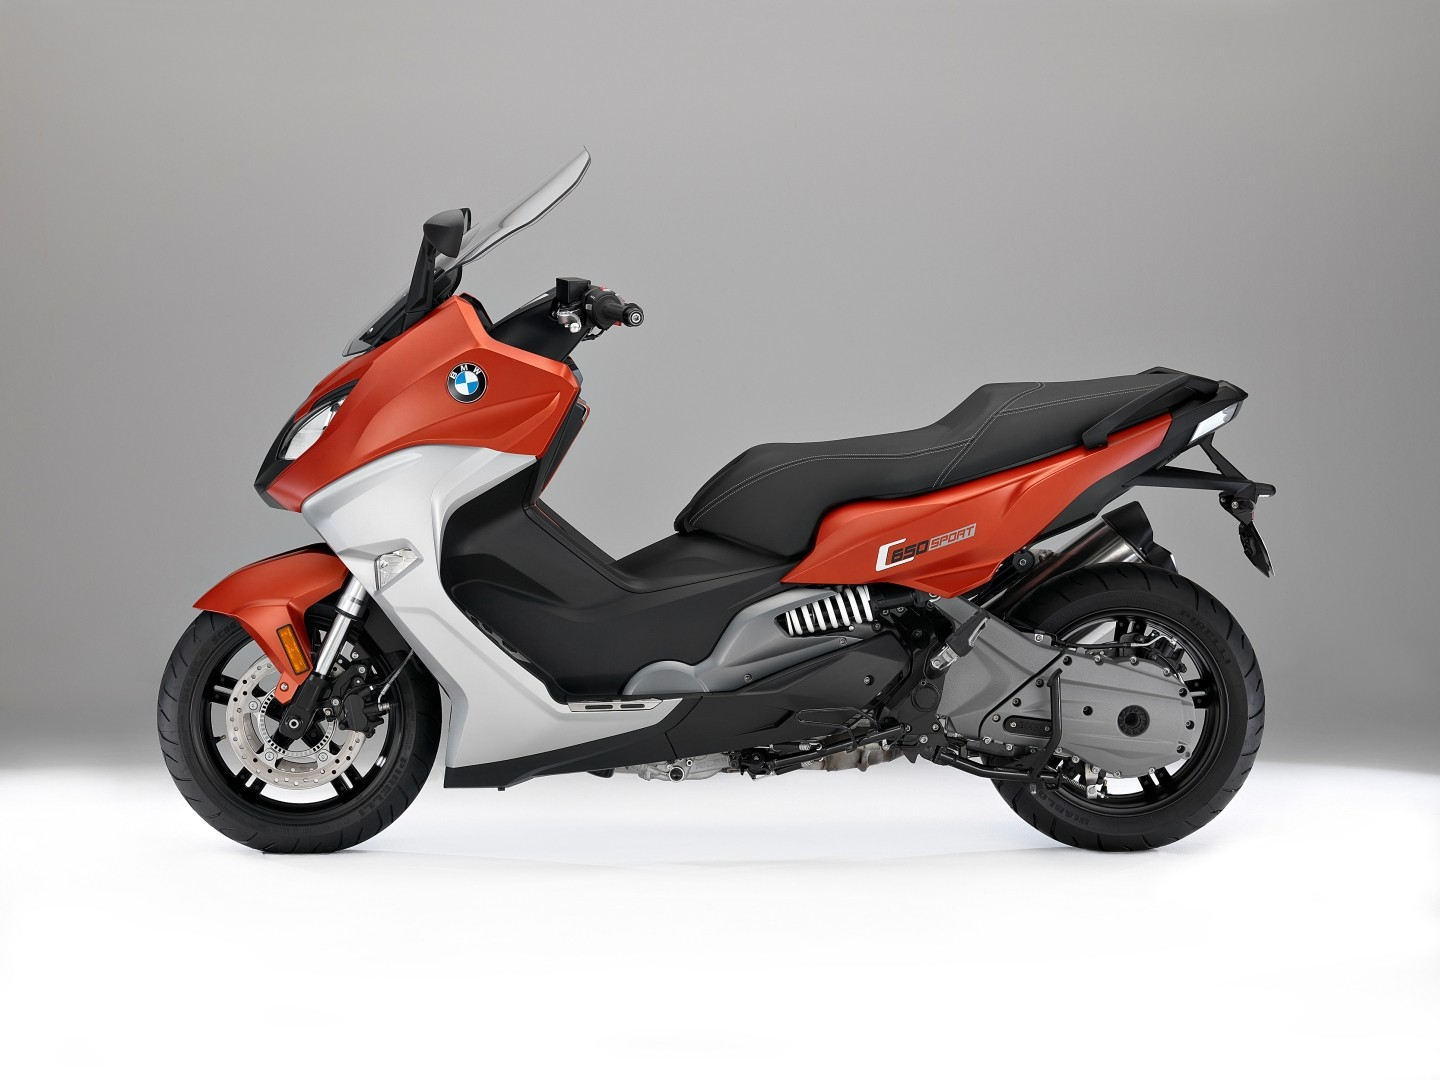 mega gallery of the upgraded bmw c650 sport and c650 gt maxi scooters autoevolution. Black Bedroom Furniture Sets. Home Design Ideas